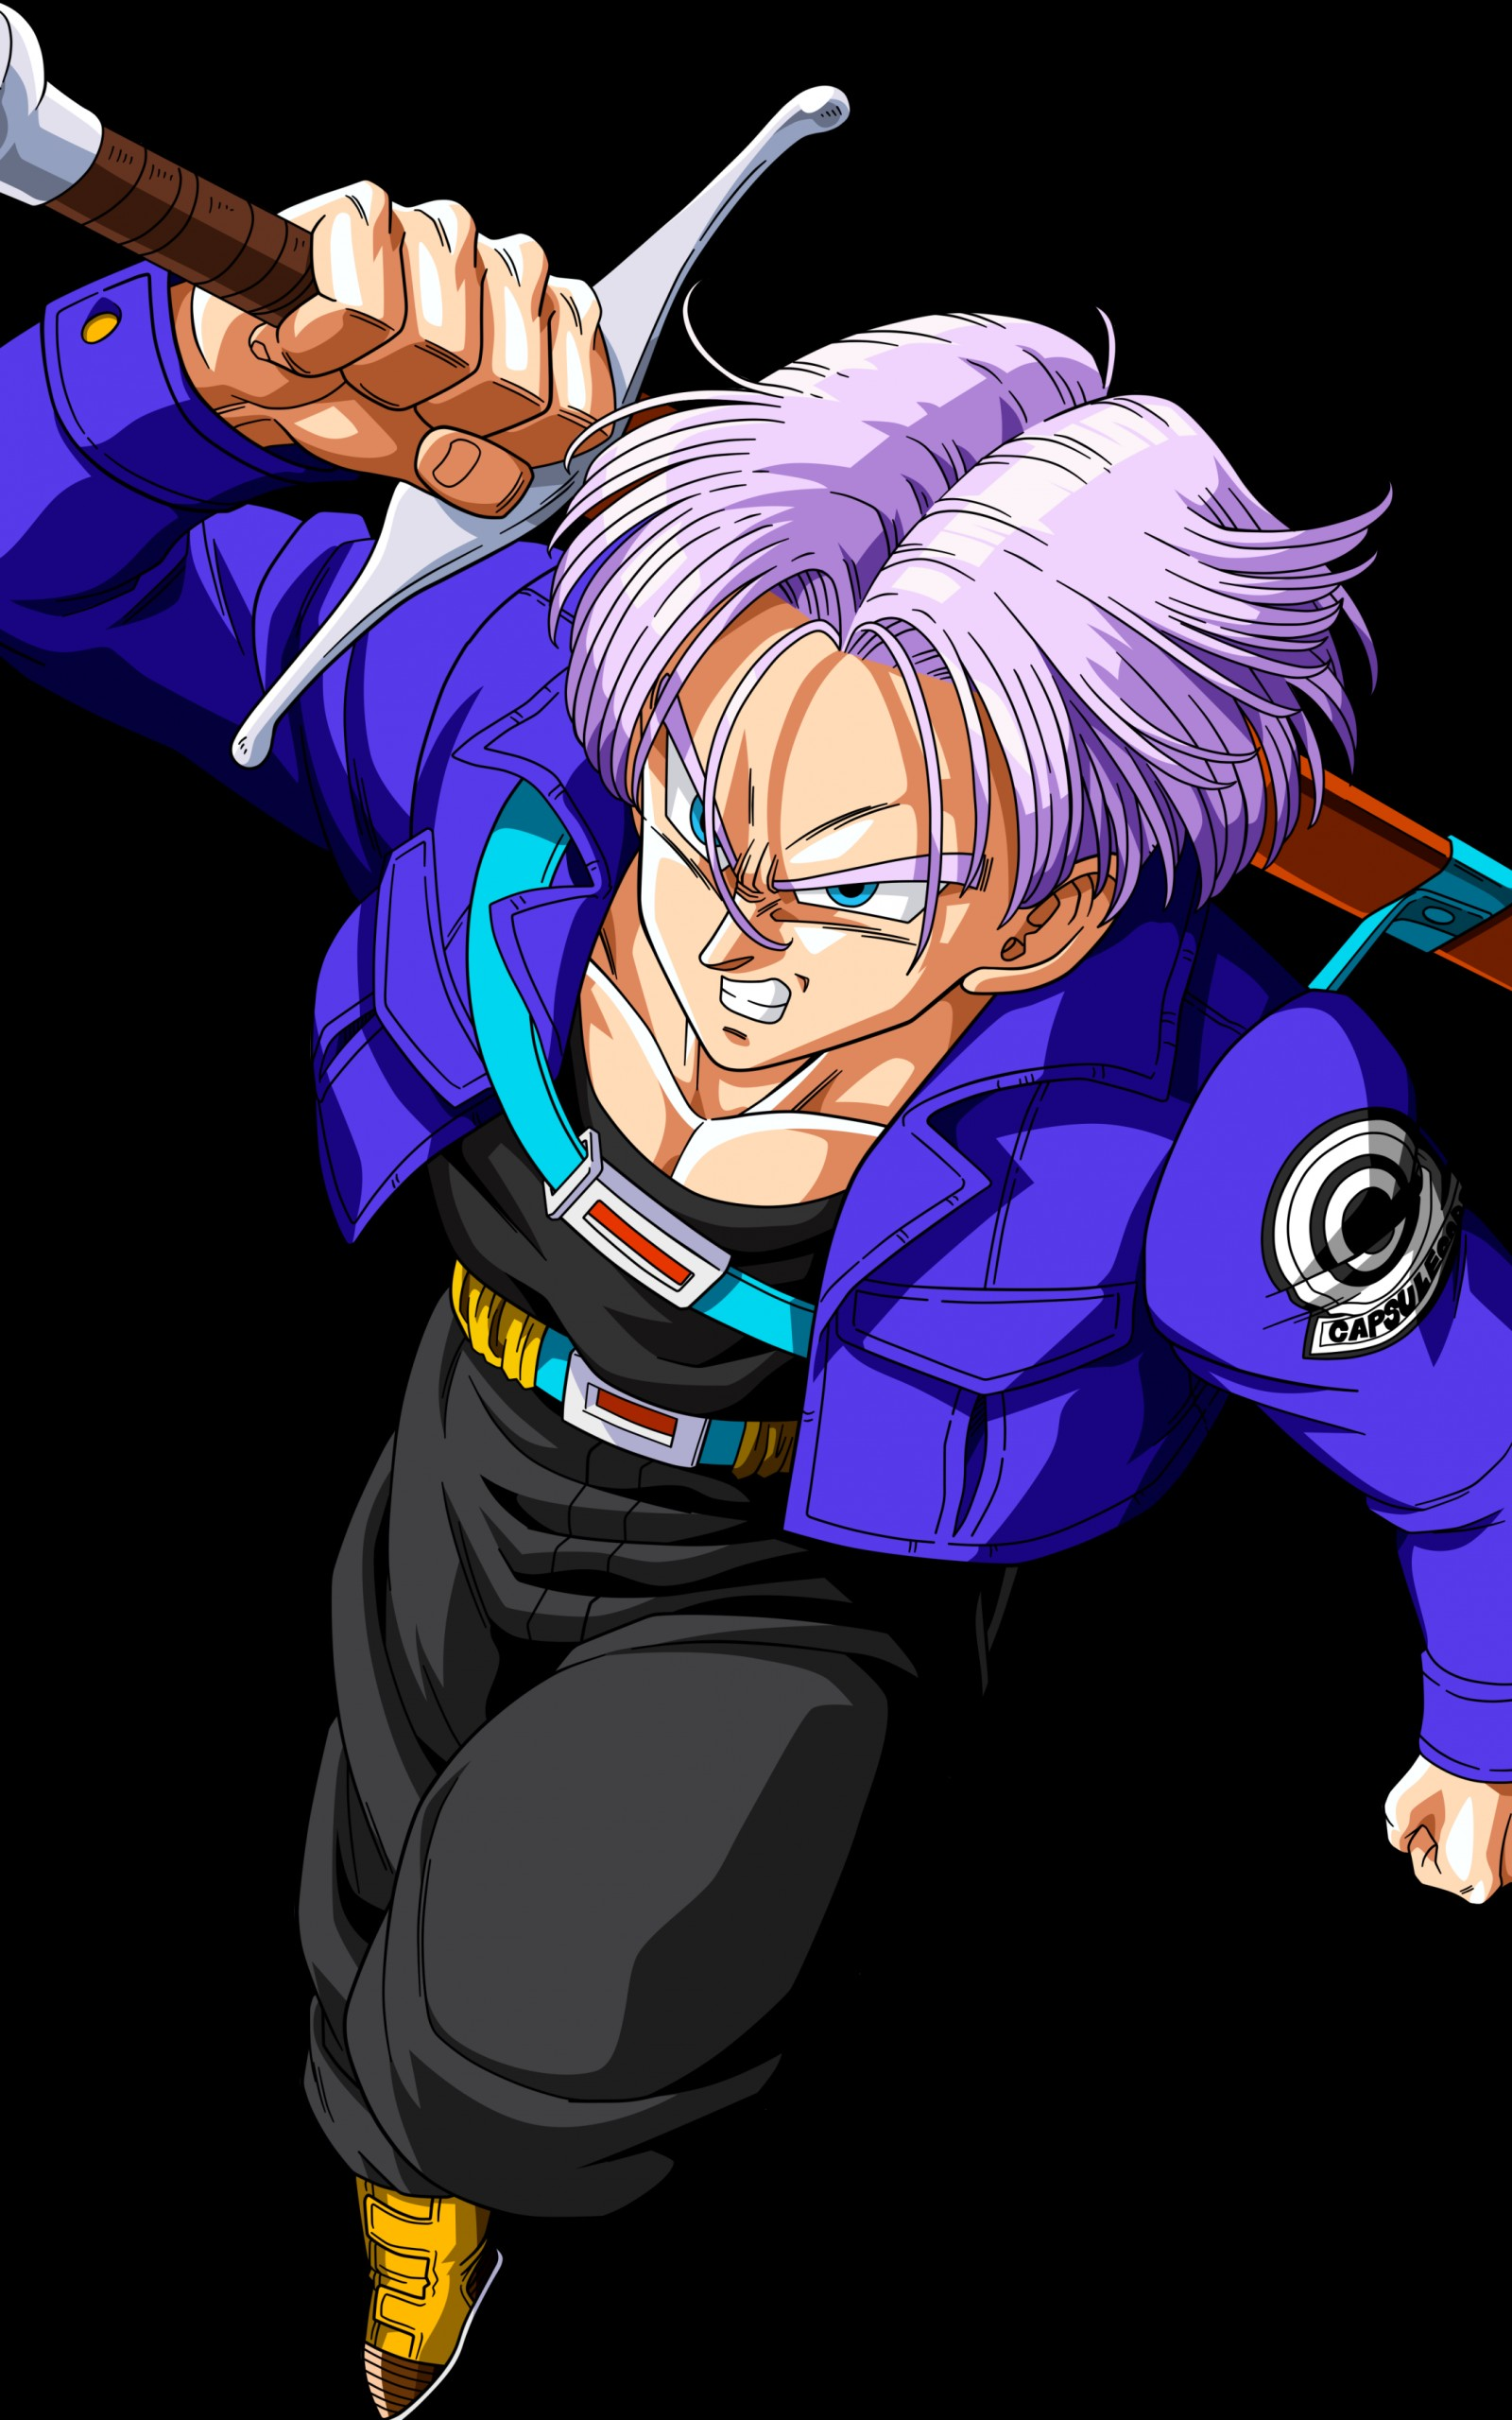 Download Future Trunks Keychain Future Trunks Kid Dragon Ball Z Trunks Wallpaper Hd 1600x2560 Download Hd Wallpaper Wallpapertip